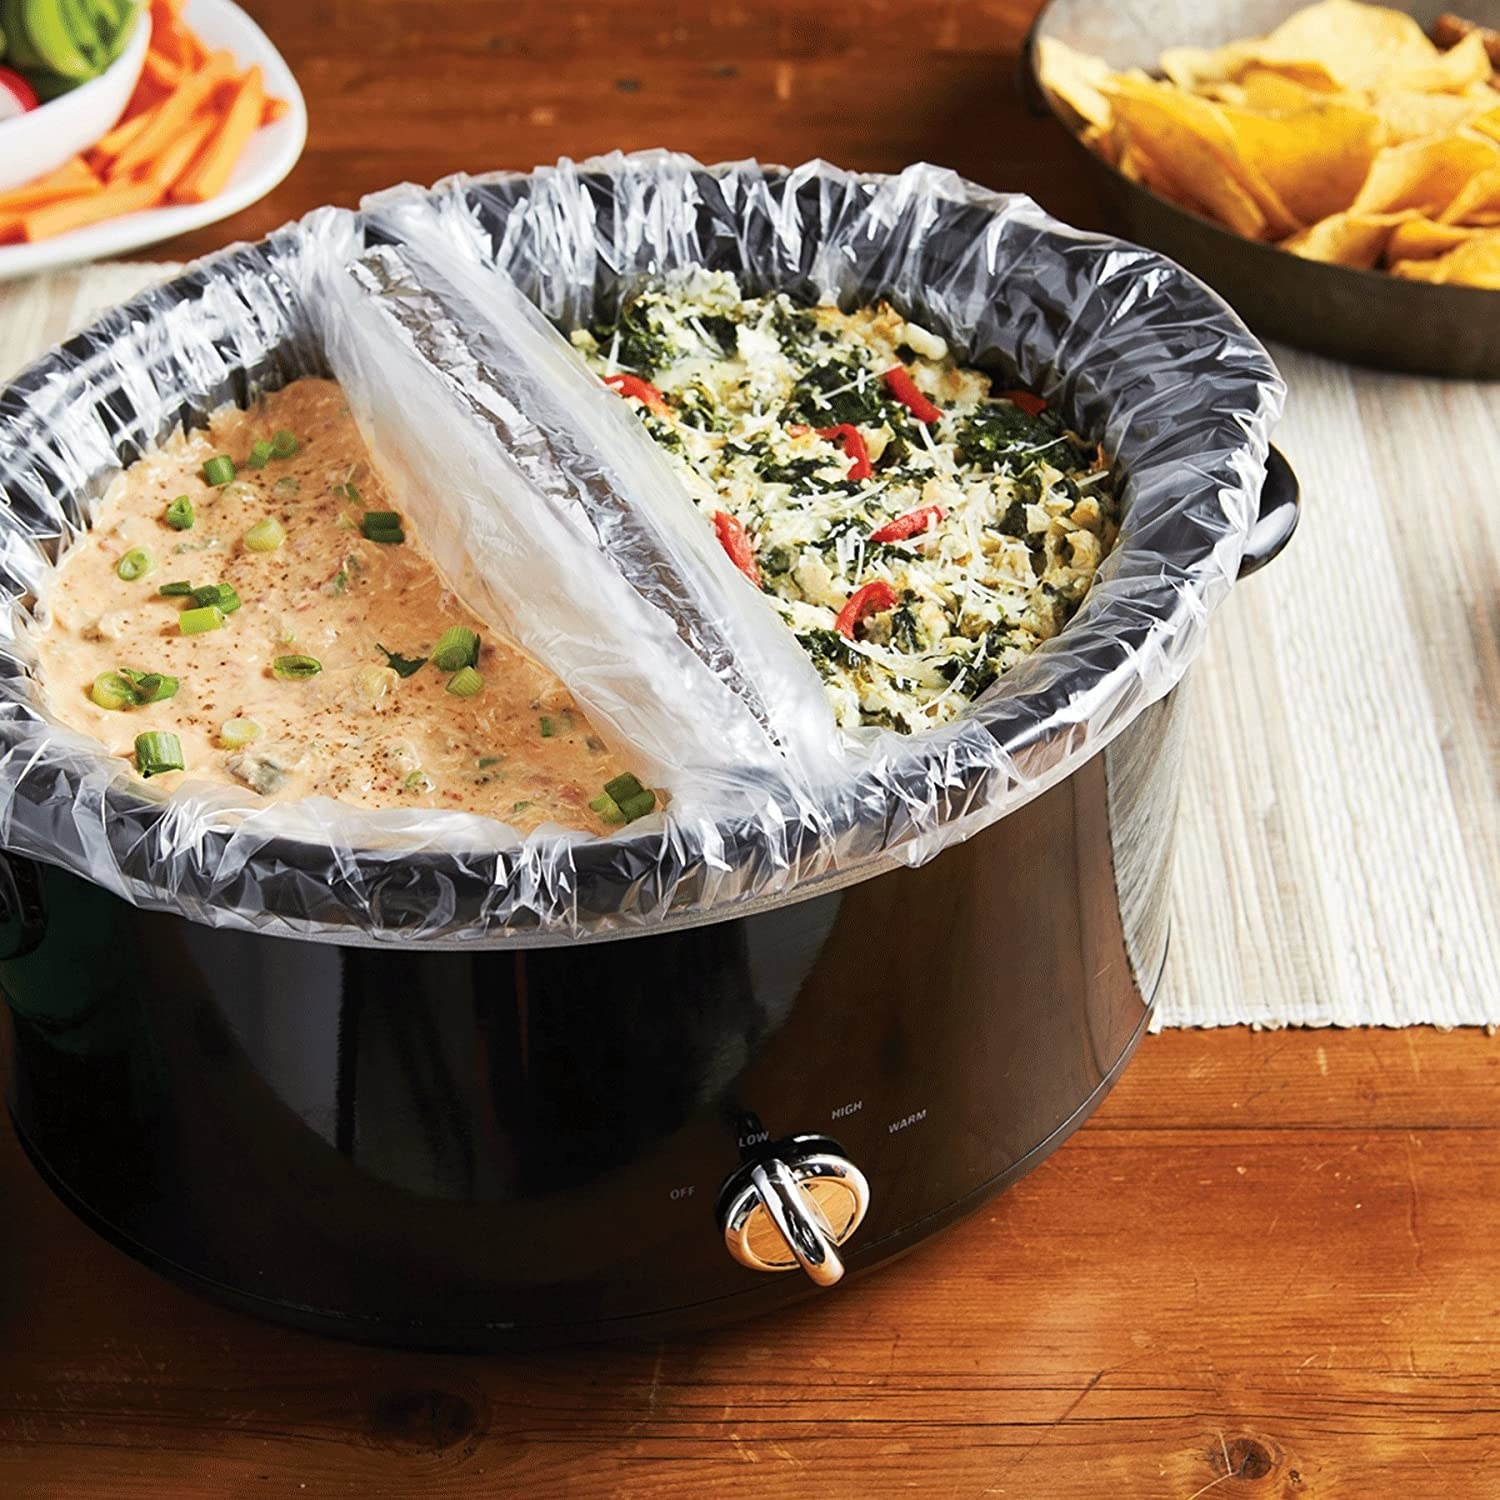 Two slow cooker bags with different dips in them